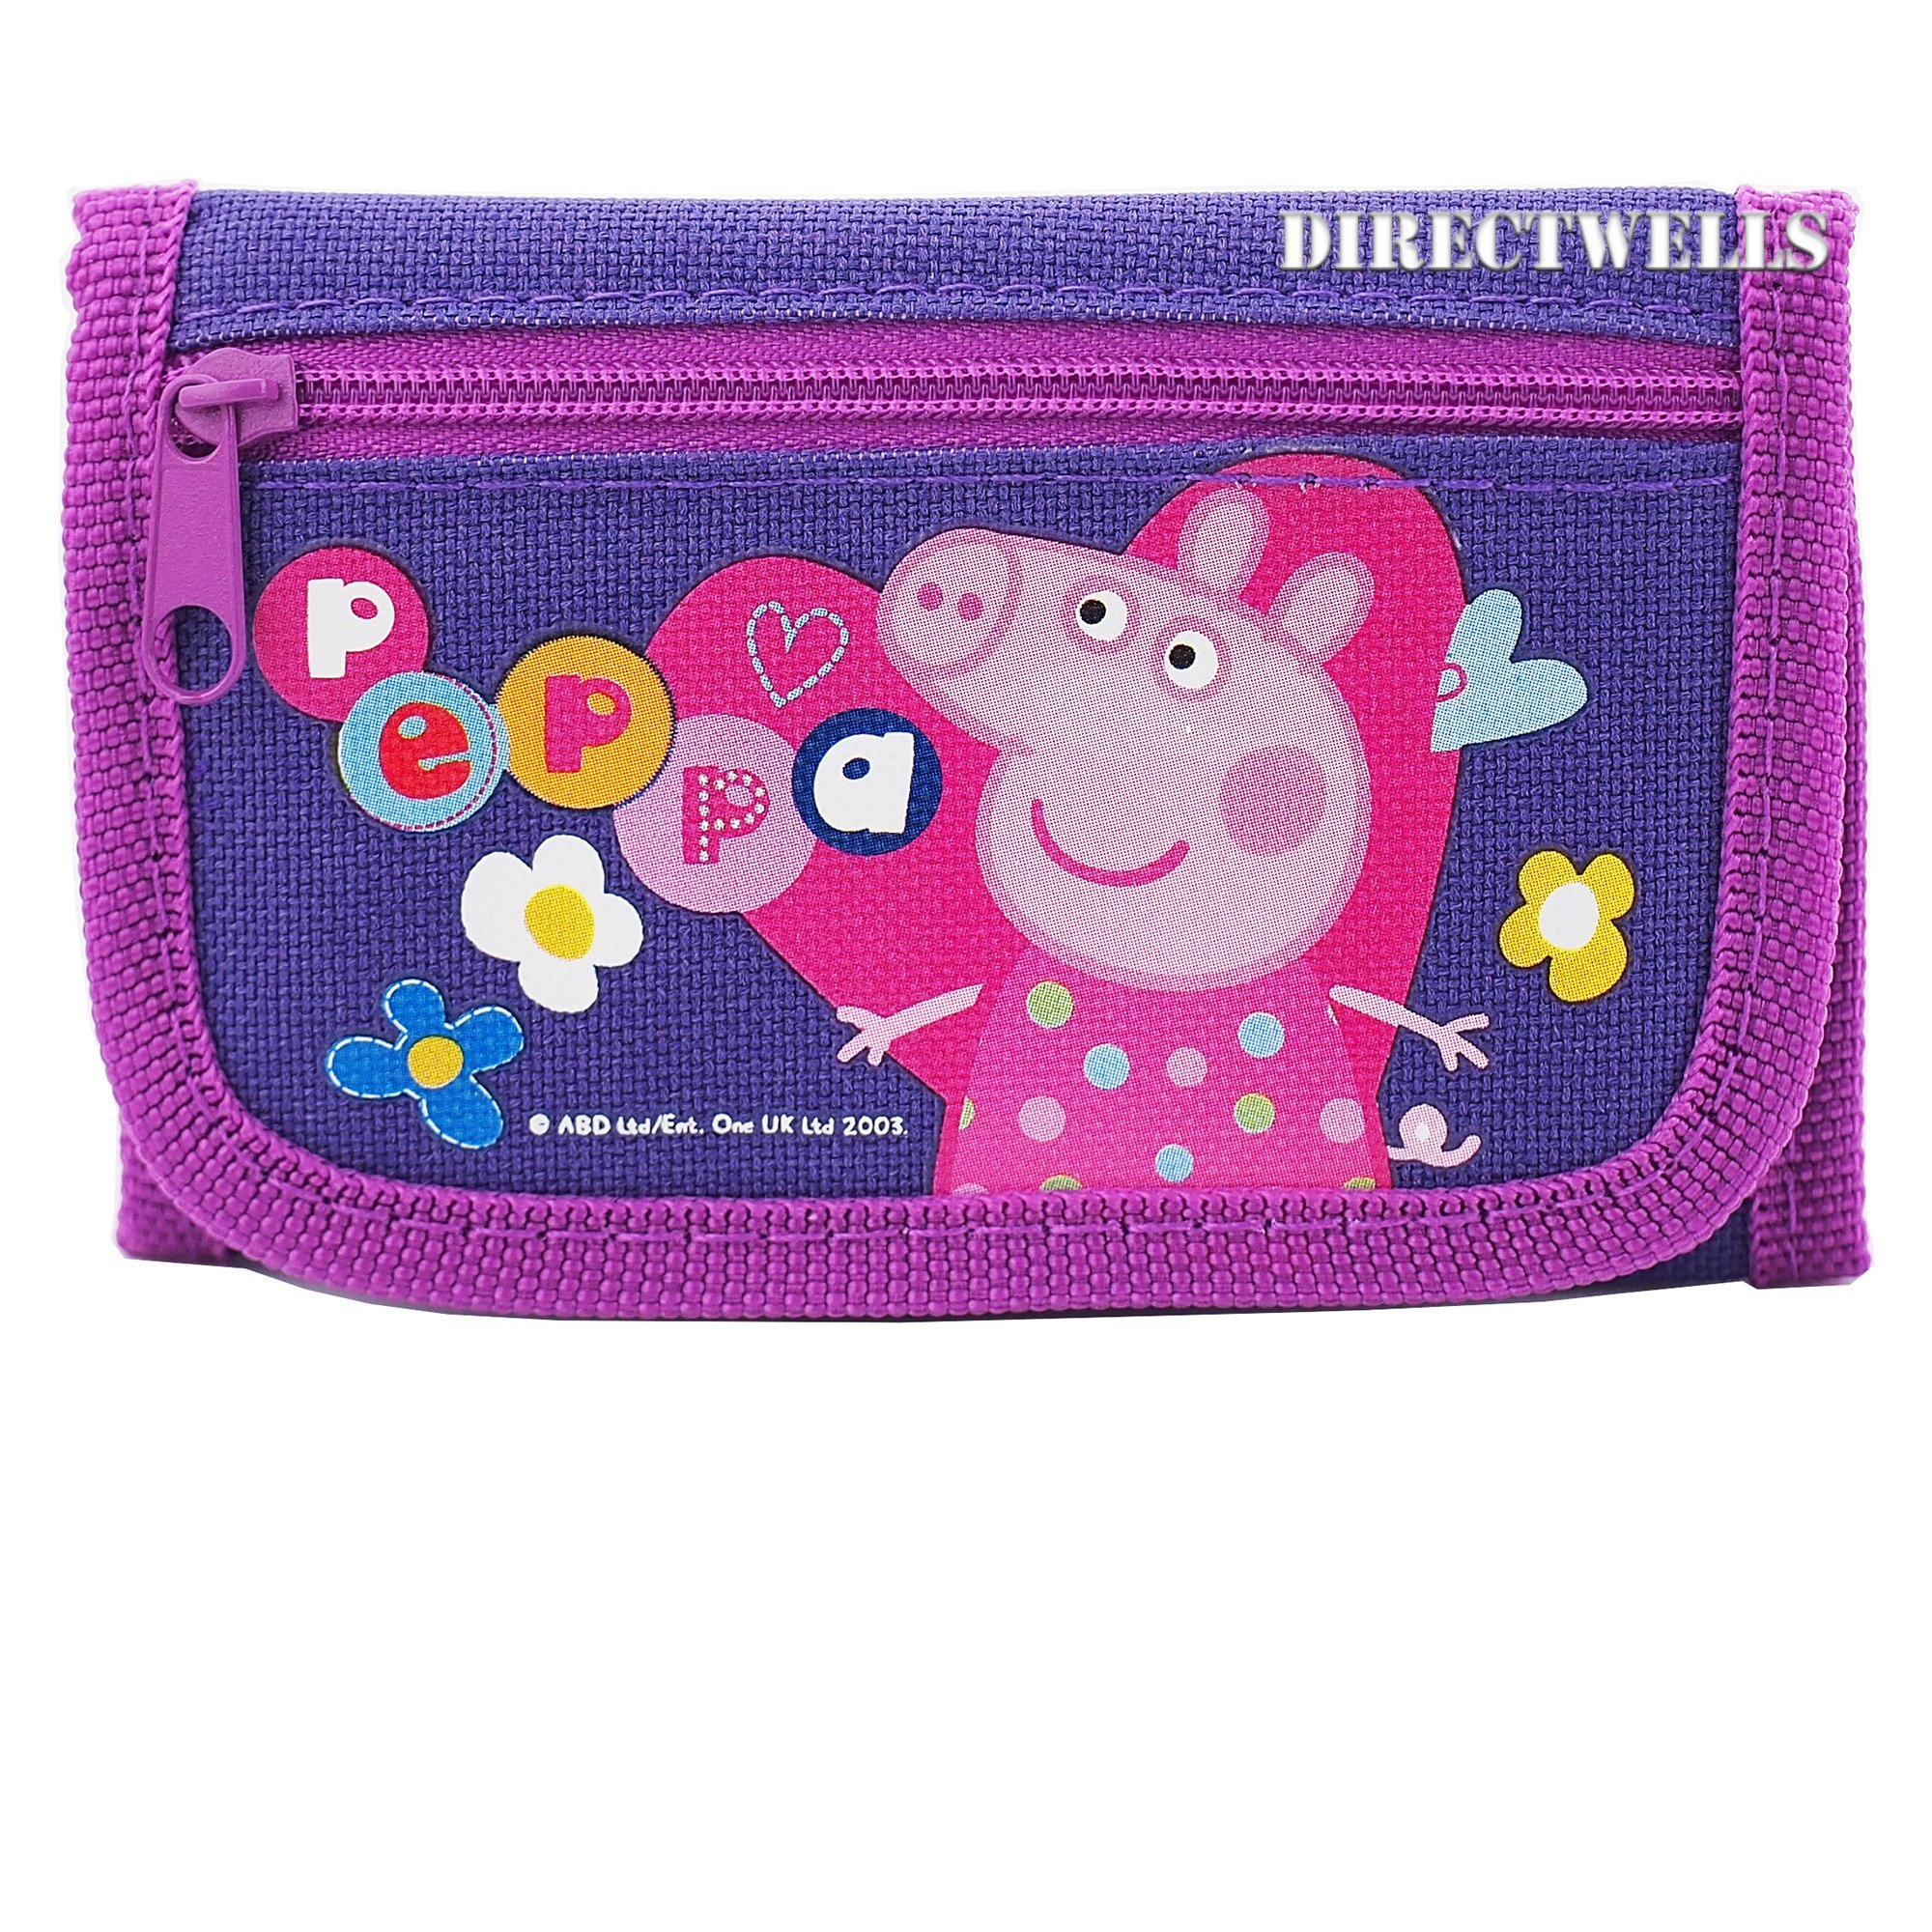 Peppa Pig Character Authentic Licensed Children Trifold Wallet (Purple) by Entertainment One (Image #1)